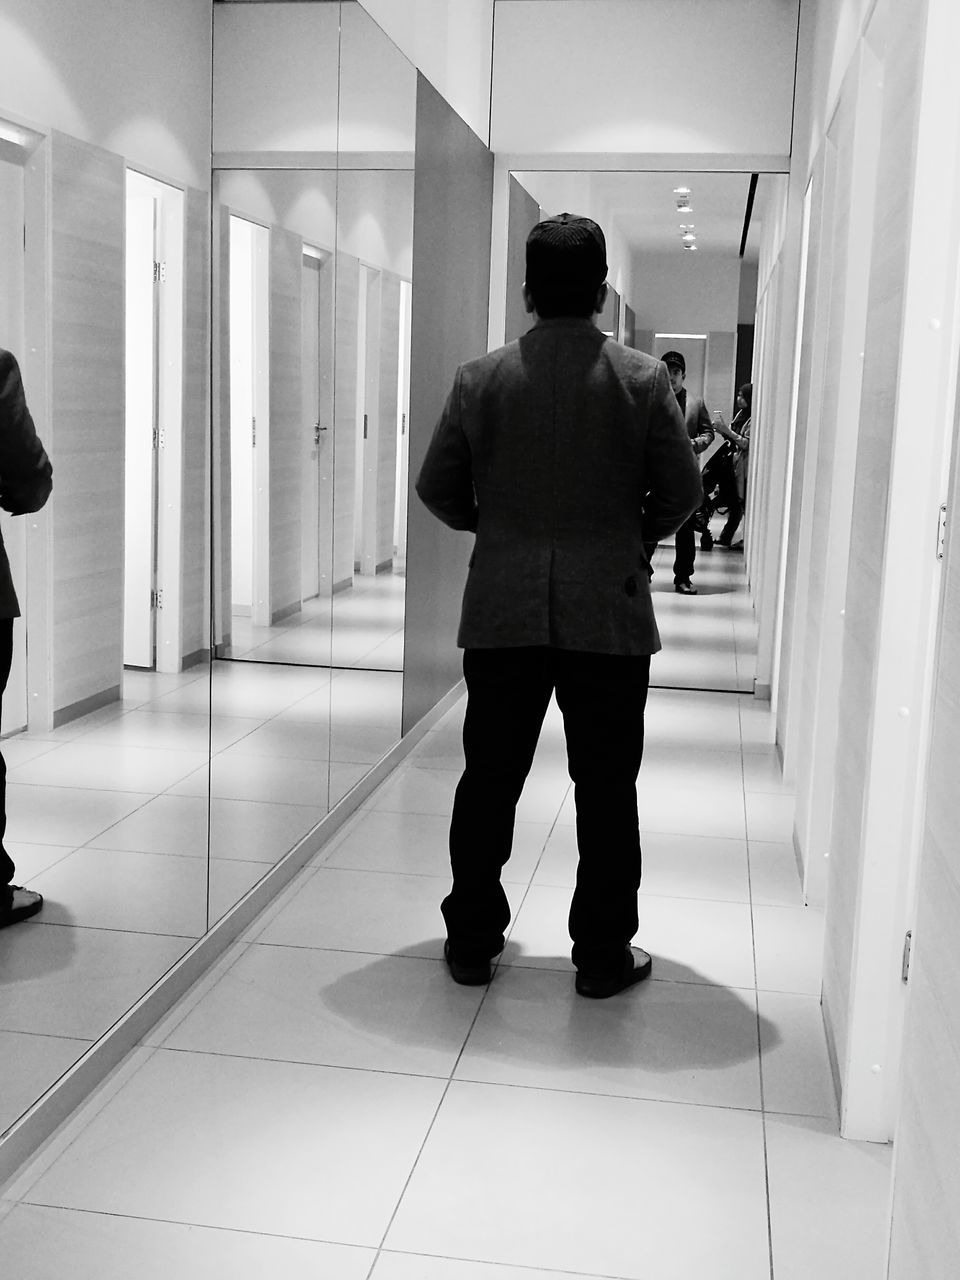 rear view, real people, full length, one person, indoors, men, tiled floor, standing, corridor, lifestyles, leisure activity, technology, day, one man only, architecture, people